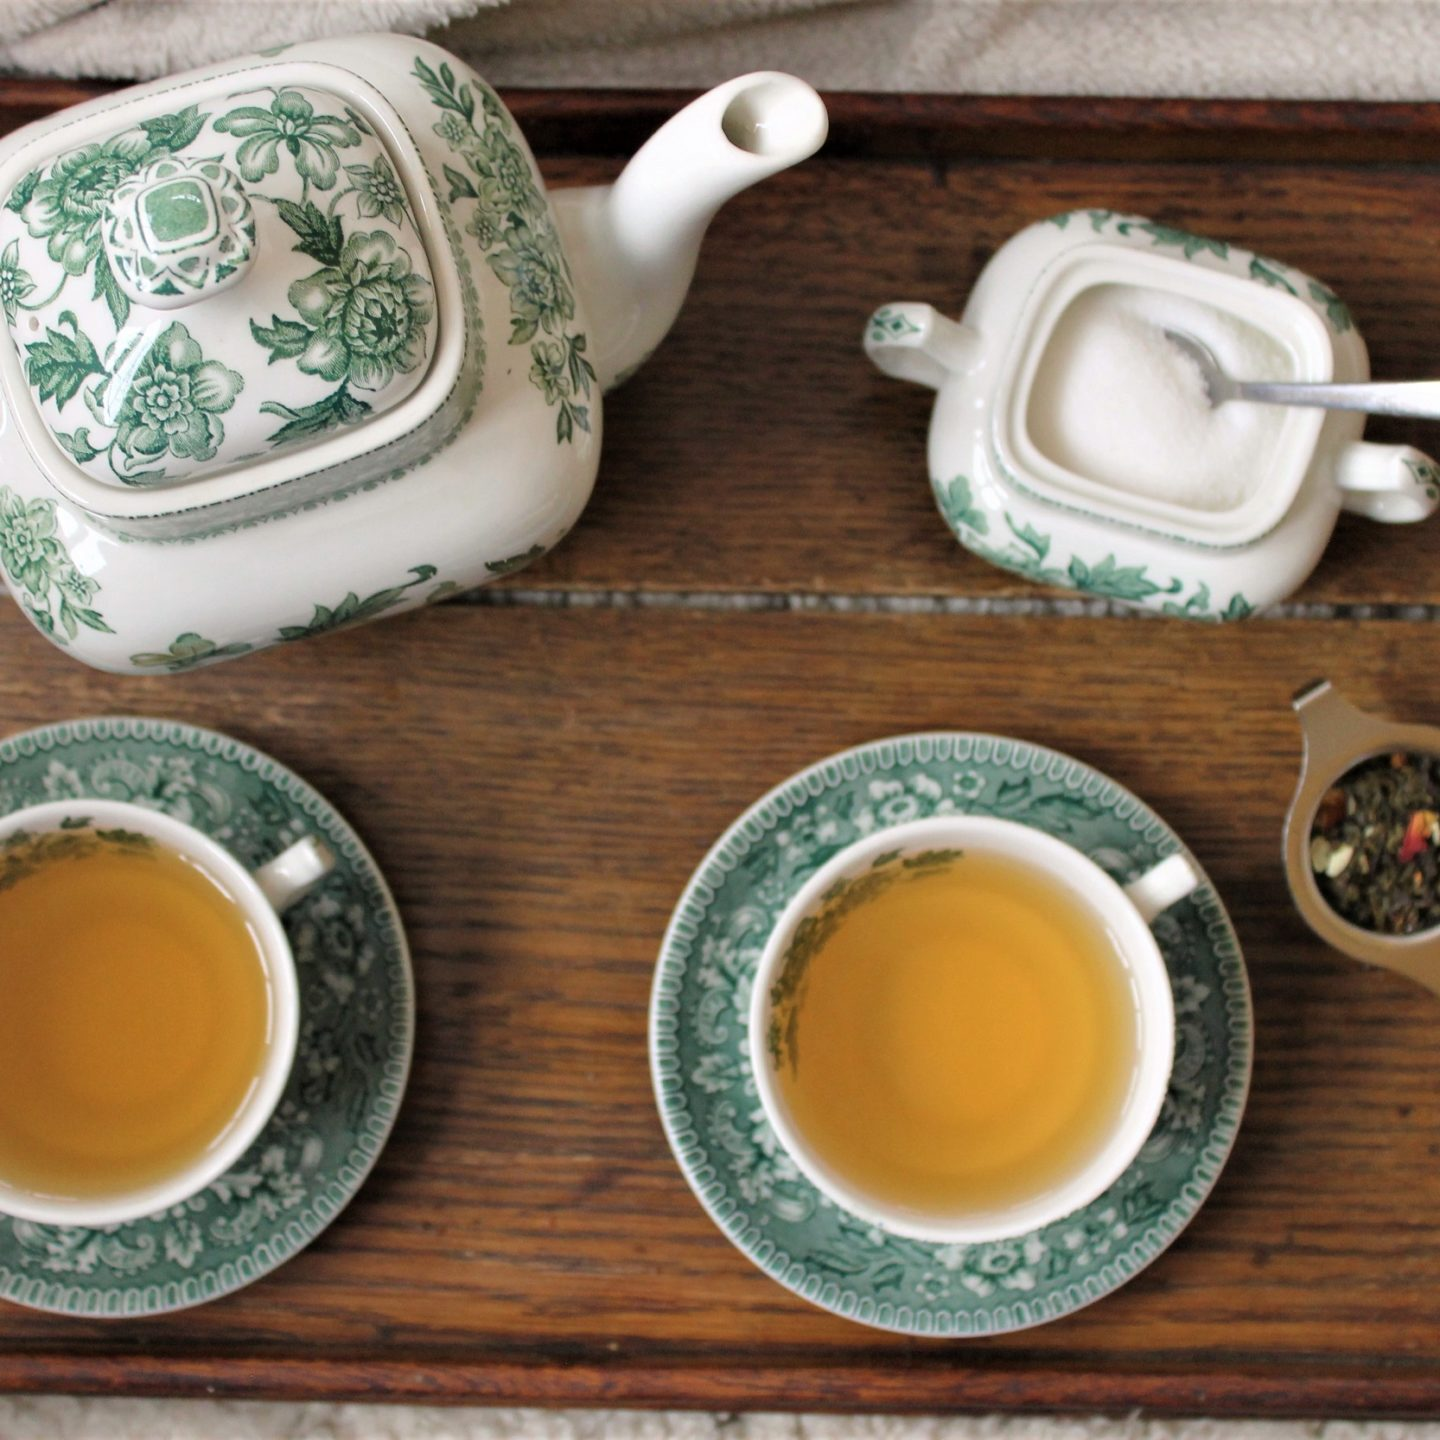 Tea and Coronavirus – What's Happening?